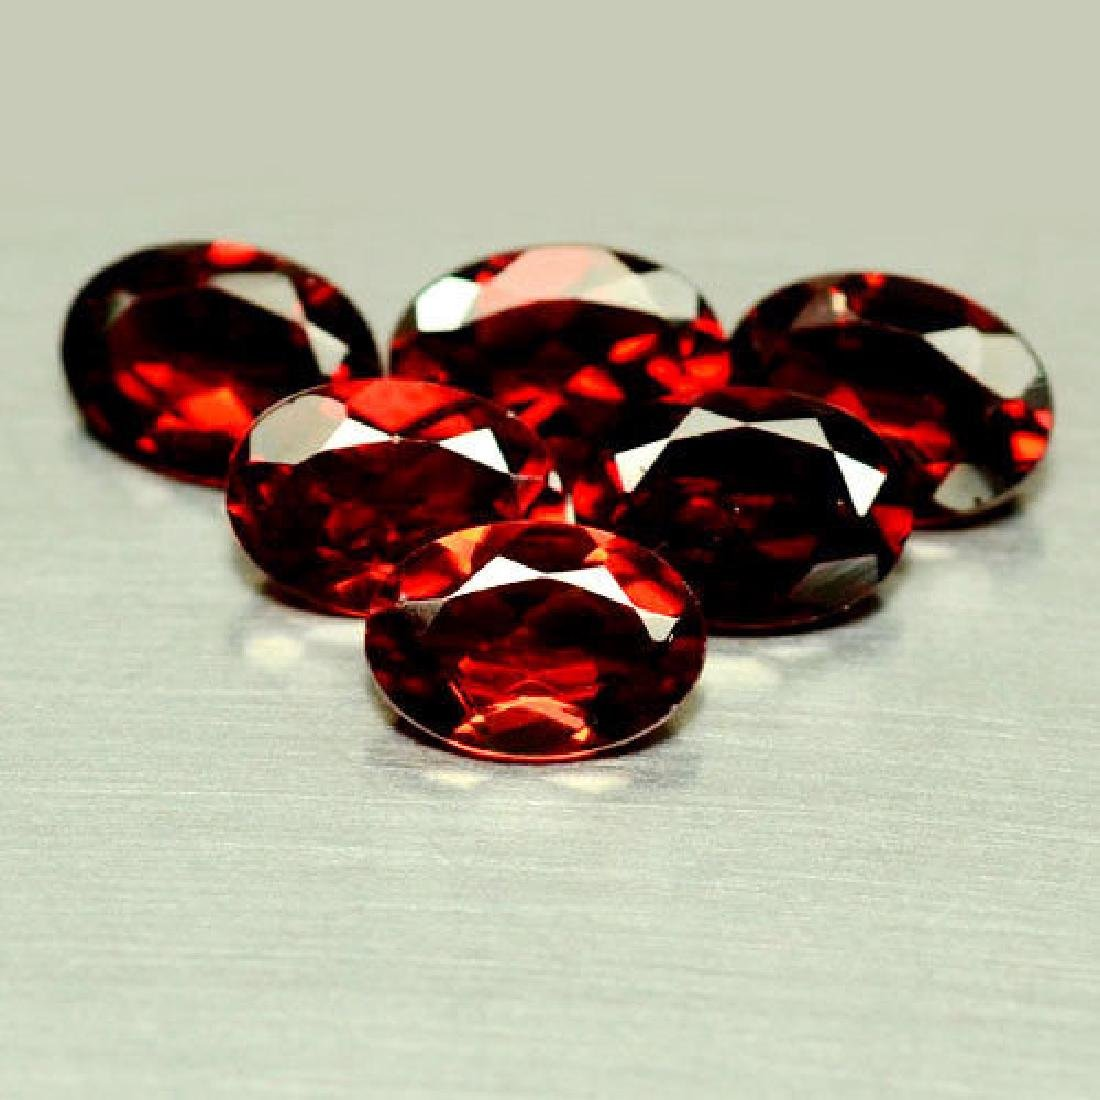 8.30 CT NATURAL! 9PCS ORANGE RED MOZAMBIQUE GARNET OVAL